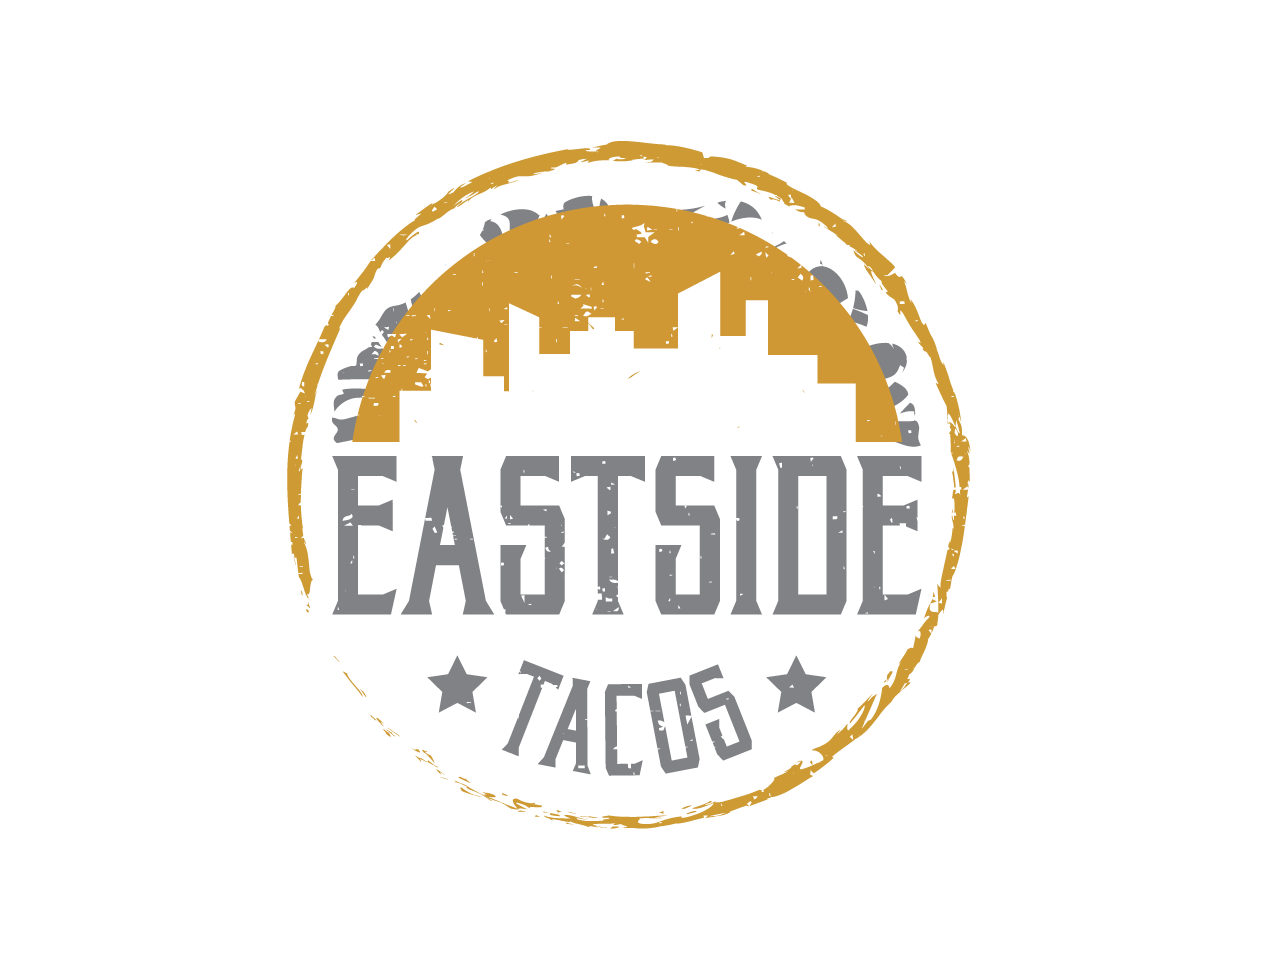 Eastside Tacos │Taco Catering & Mexican Food Catering